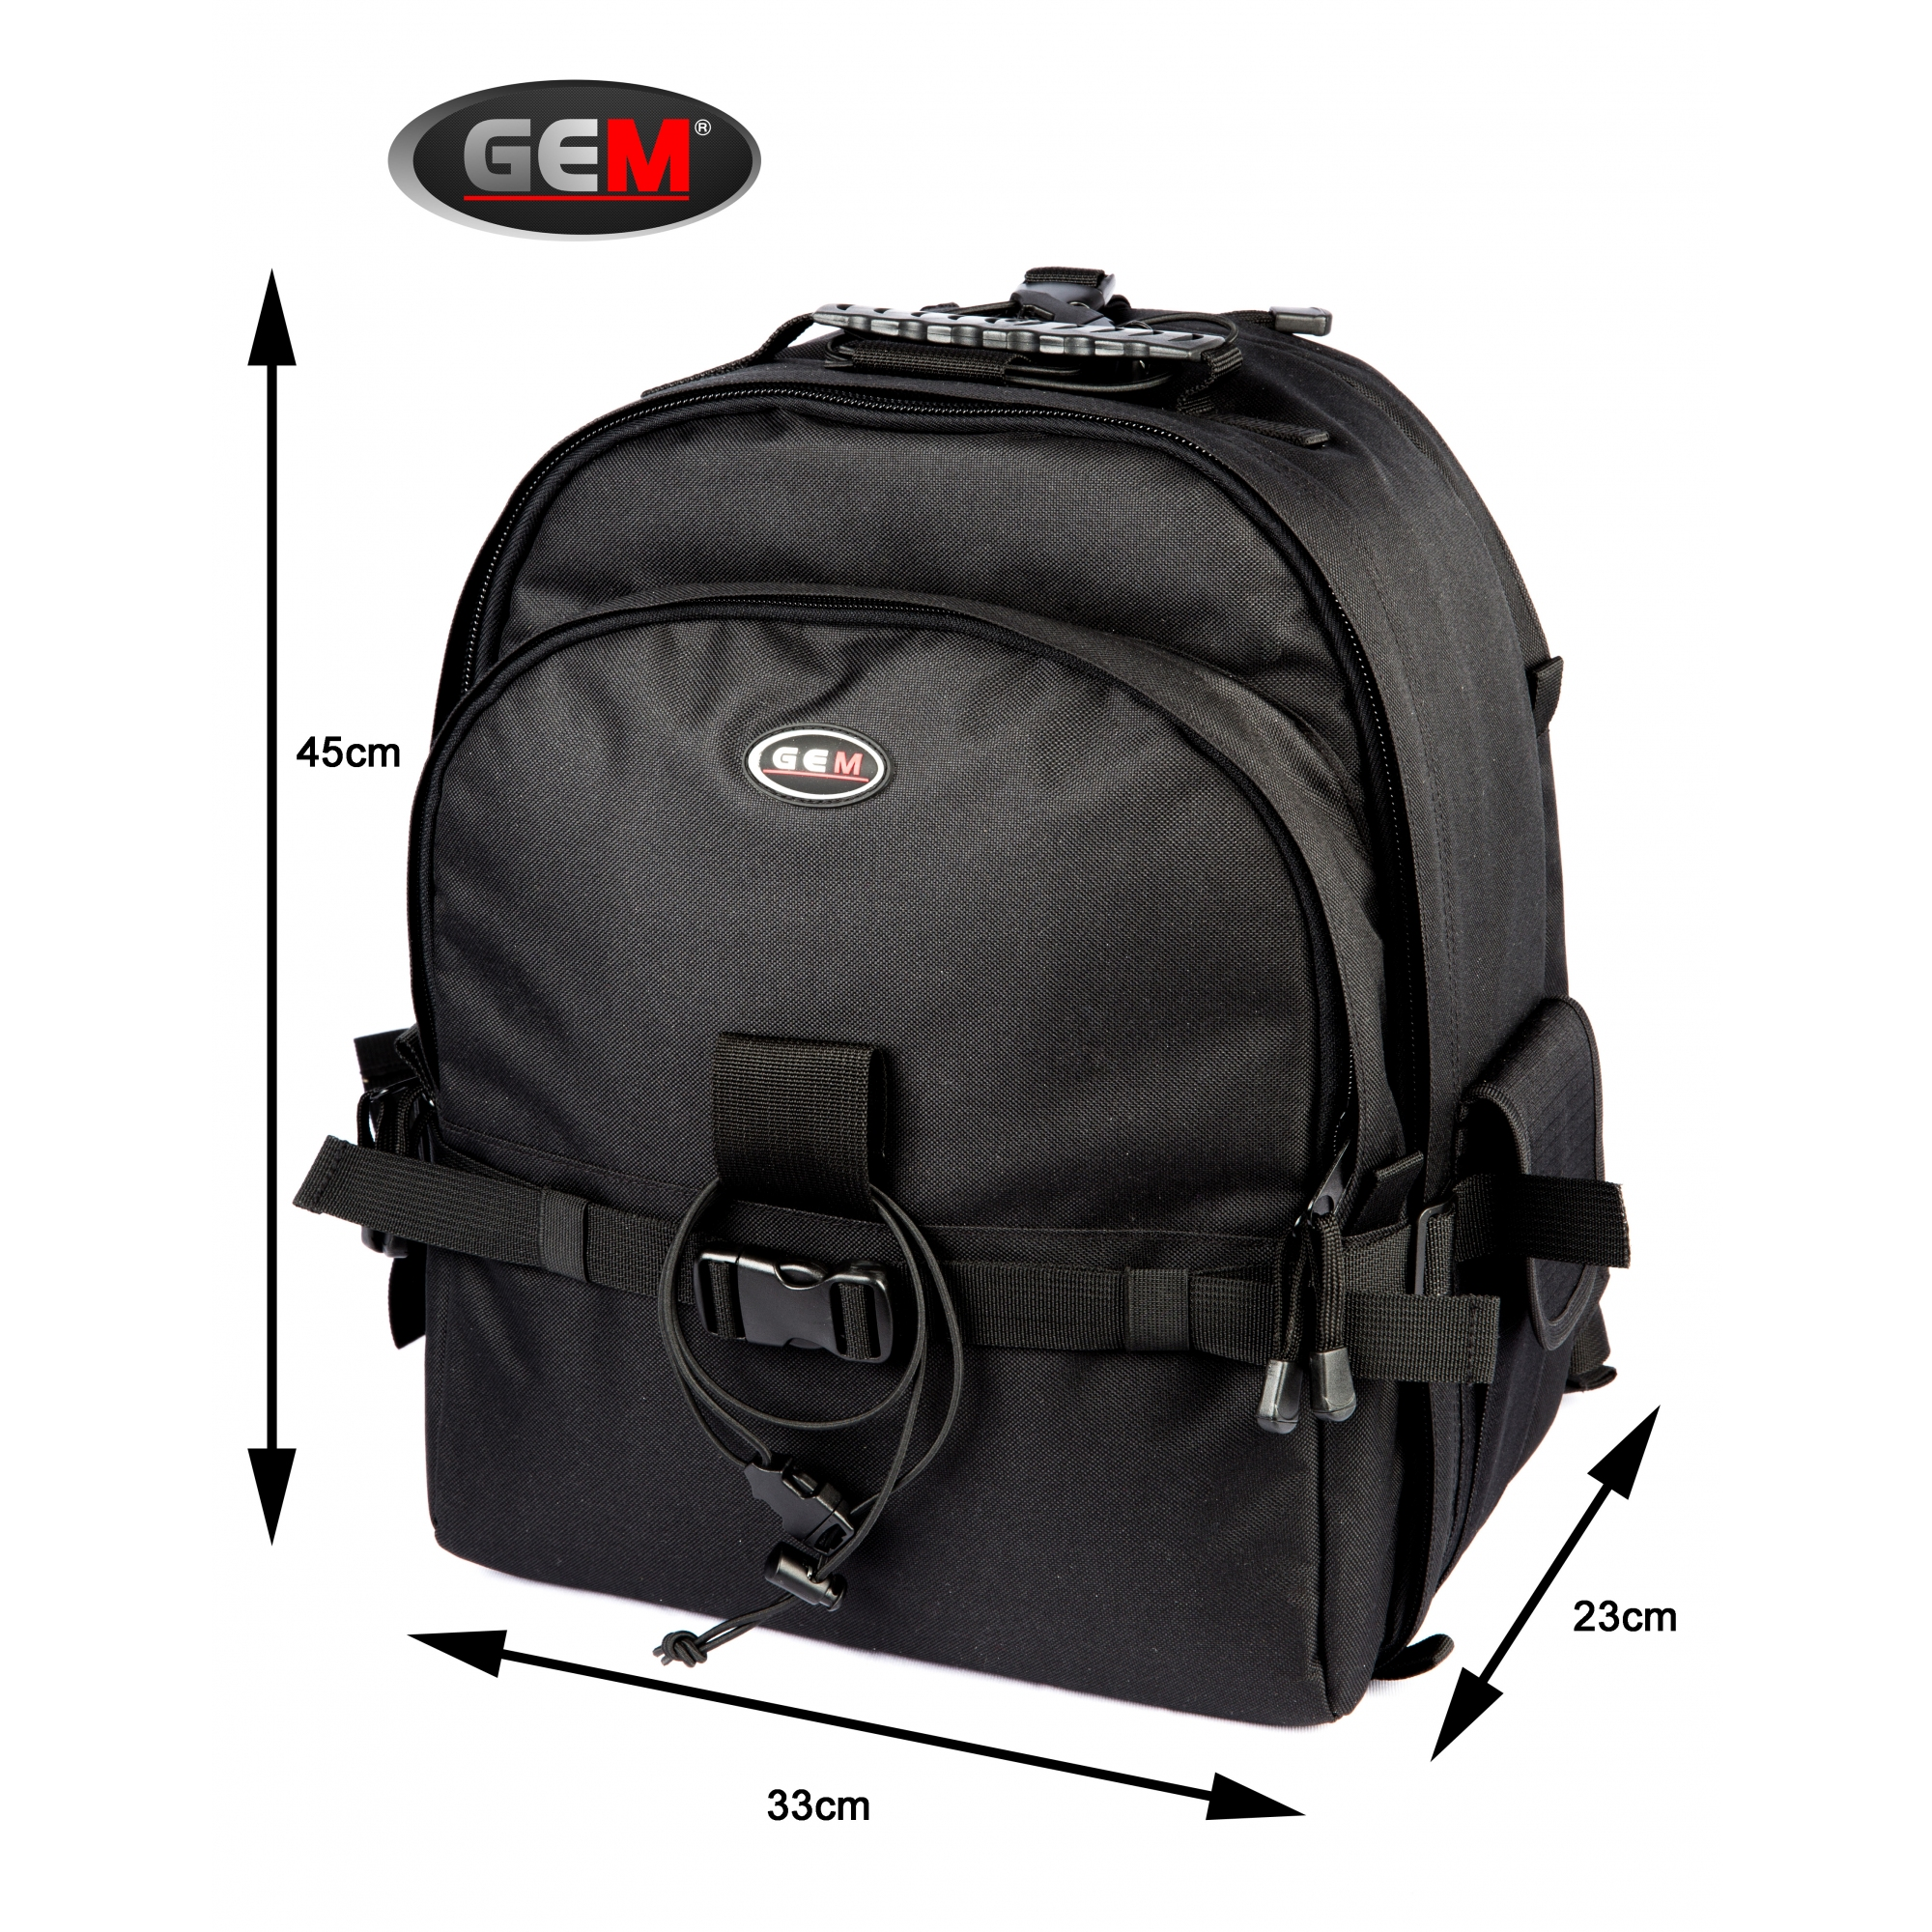 The GEM Scorpion Maxi SLR Camera Backpack with Laptop Section for Nikon D5100